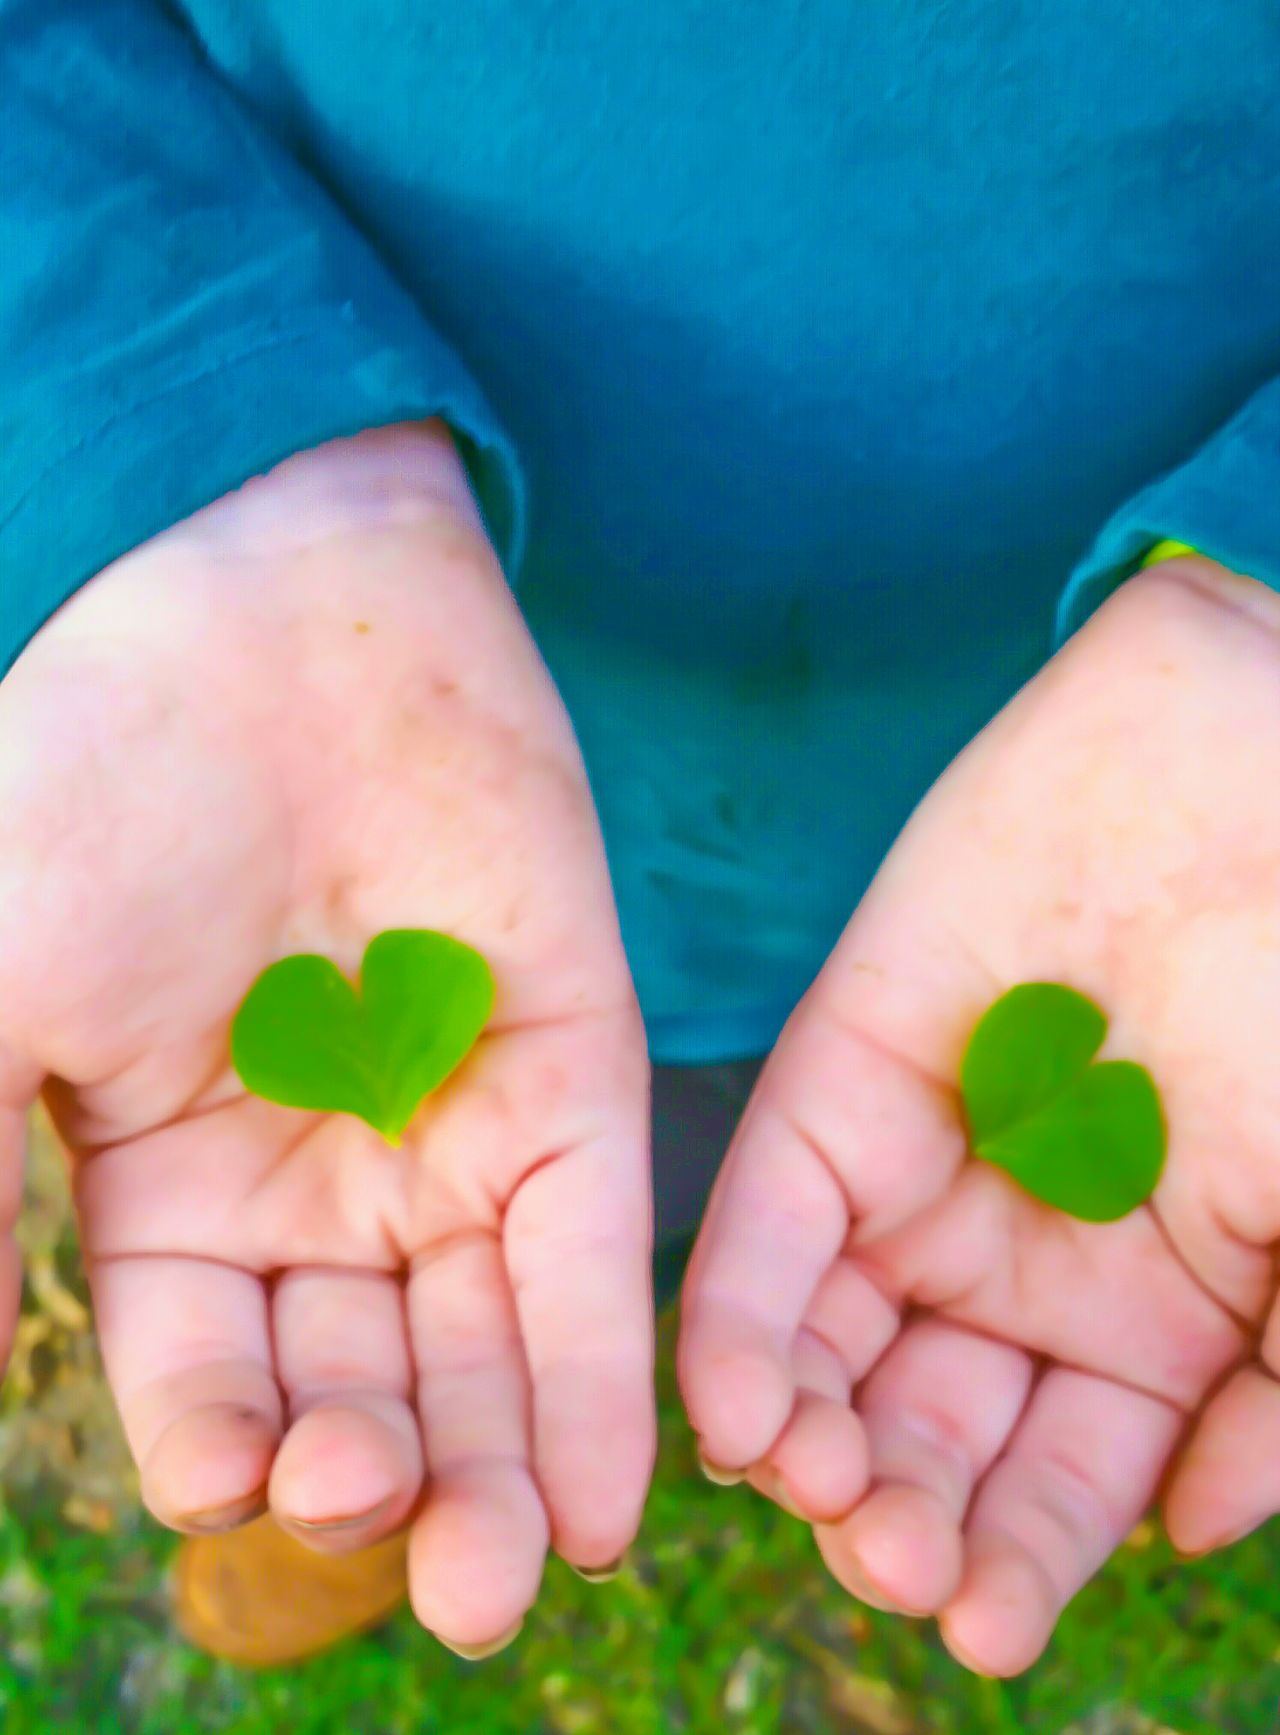 Human Hand Human Body Part Close-up Environmental Issues Holding Green Color People Outdoors One Person Day Clover Clover Leaf Good Luck Luck Of The Irish Shamrocks Shamrock Green Leaf Nature Lover Love Heart Heart Shape Palm Palm Of Hand Showing Playing Outside